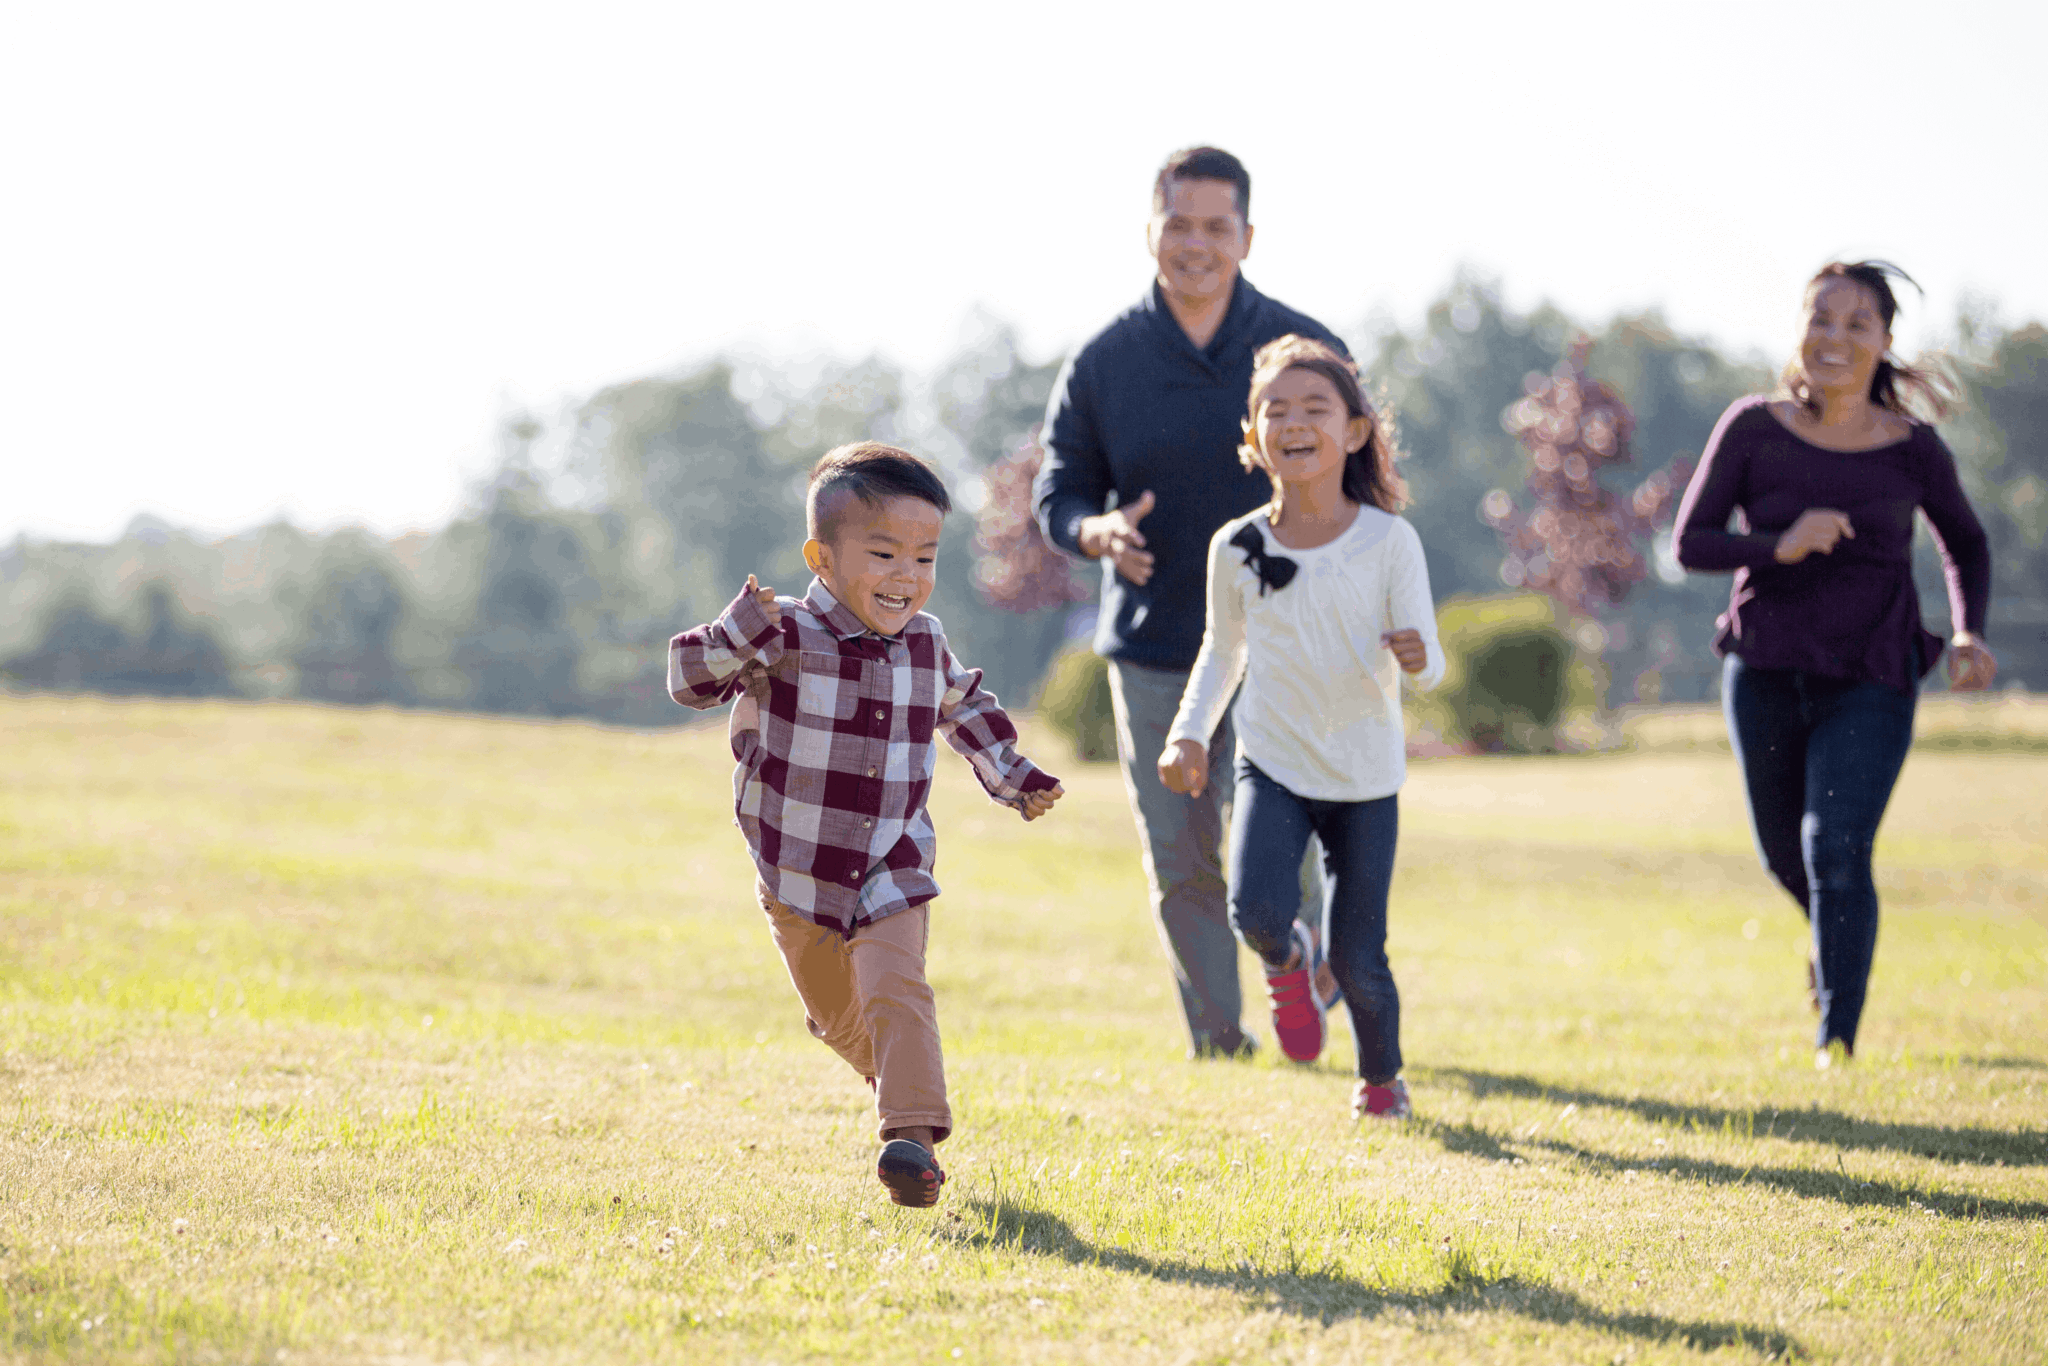 Family playing tag in a meadow